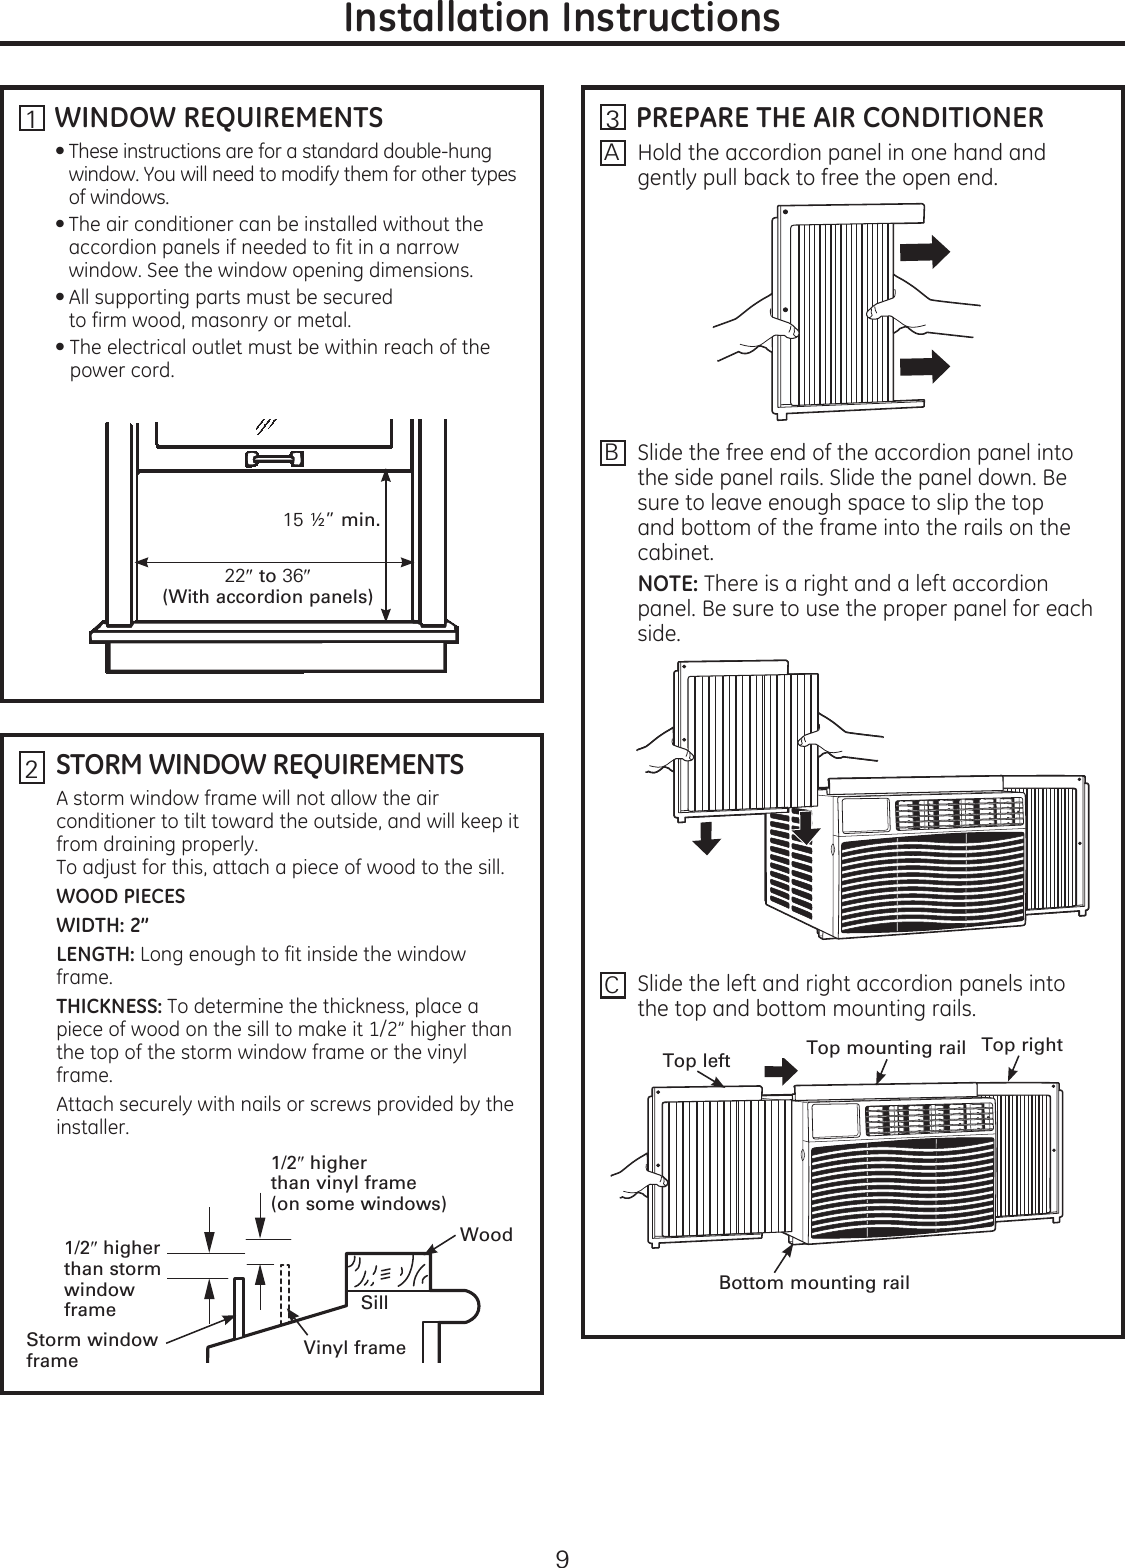 Eclipse air conditioning user manual